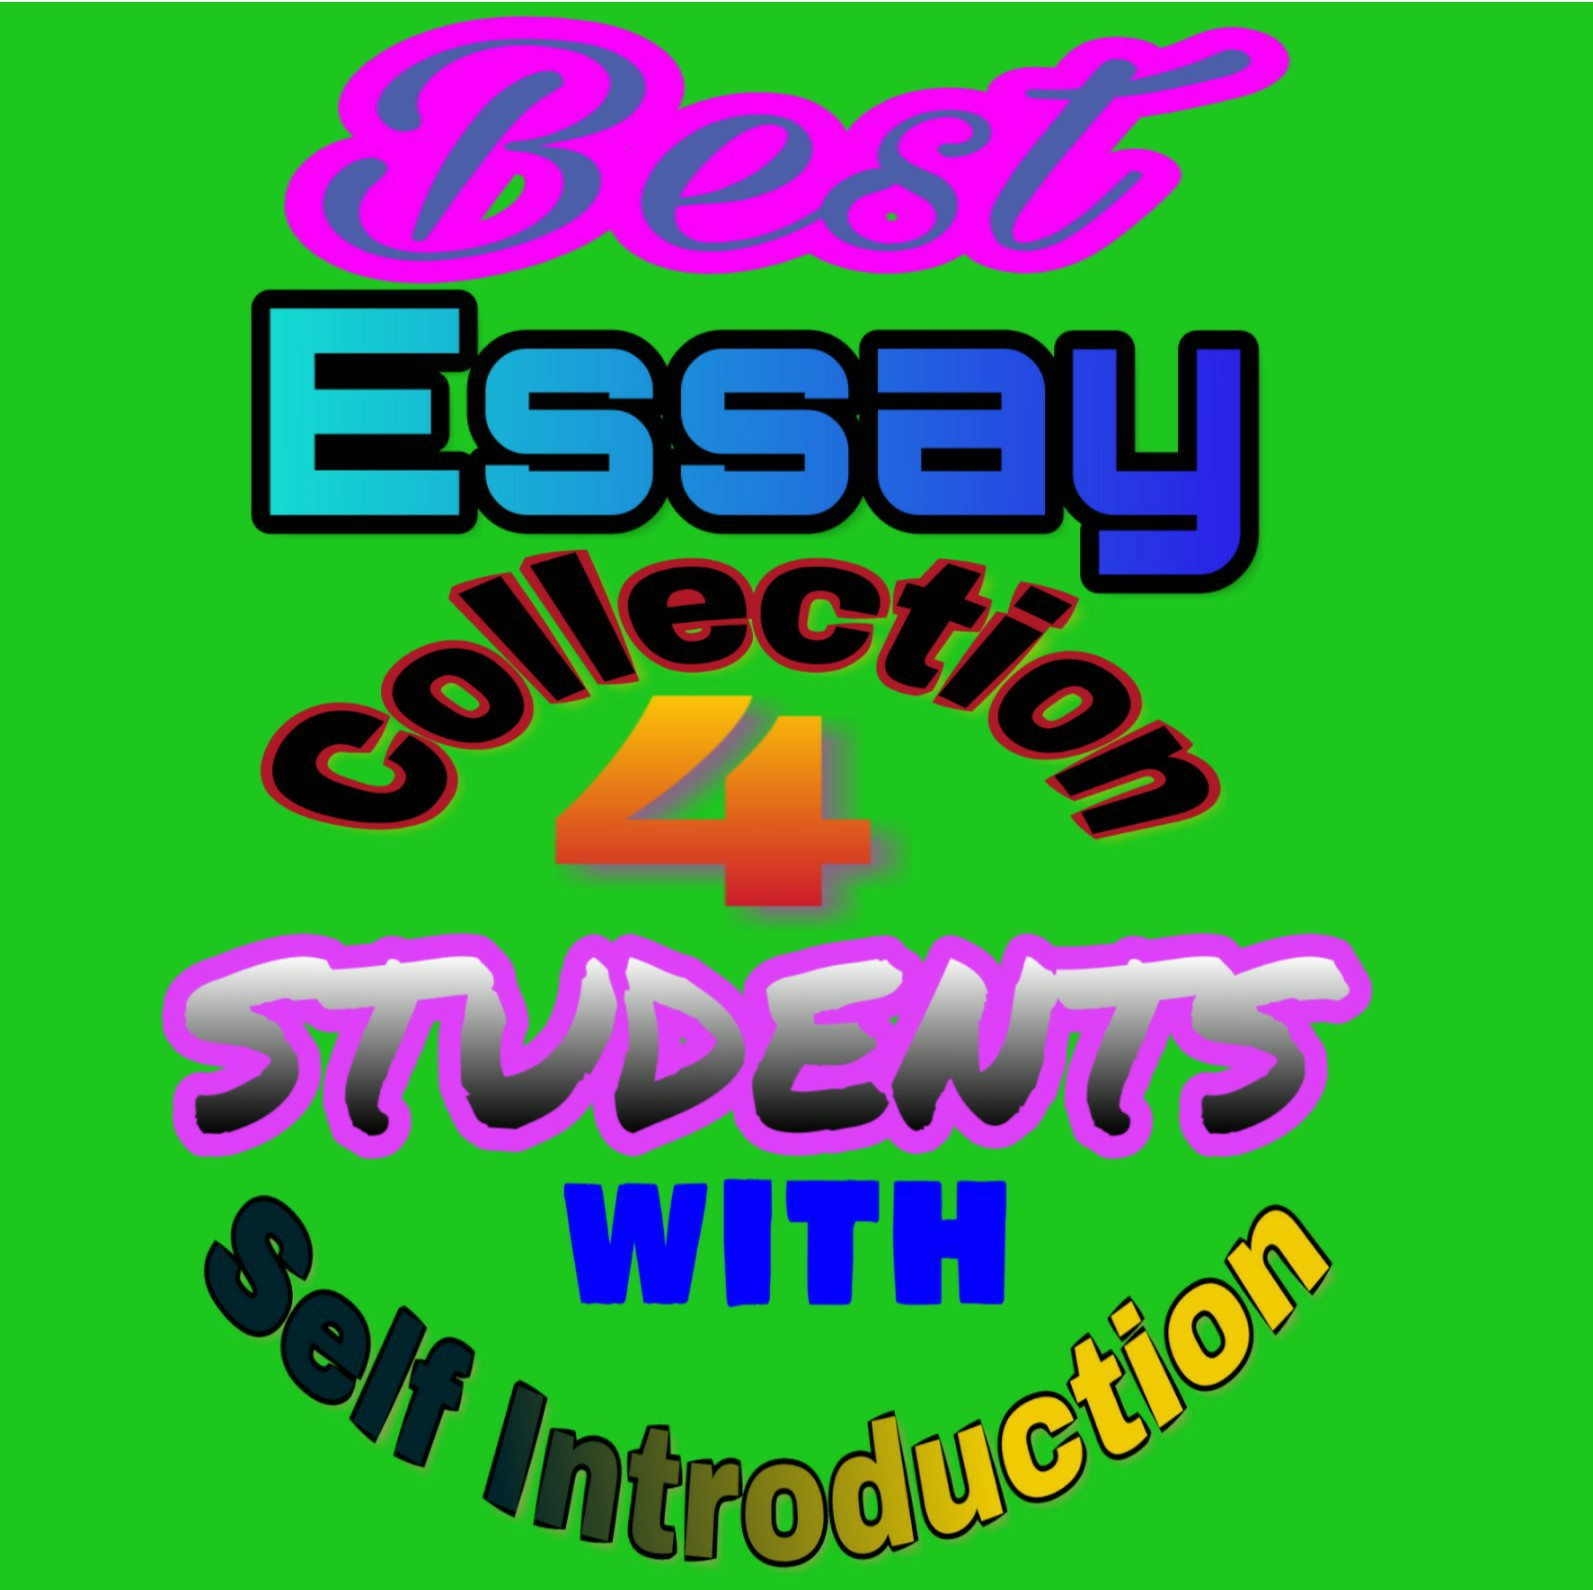 010 Img 20181115 072229 573 Jpg Essay Example Shocking Collection Collections For Students 2017 Best Pdf Full